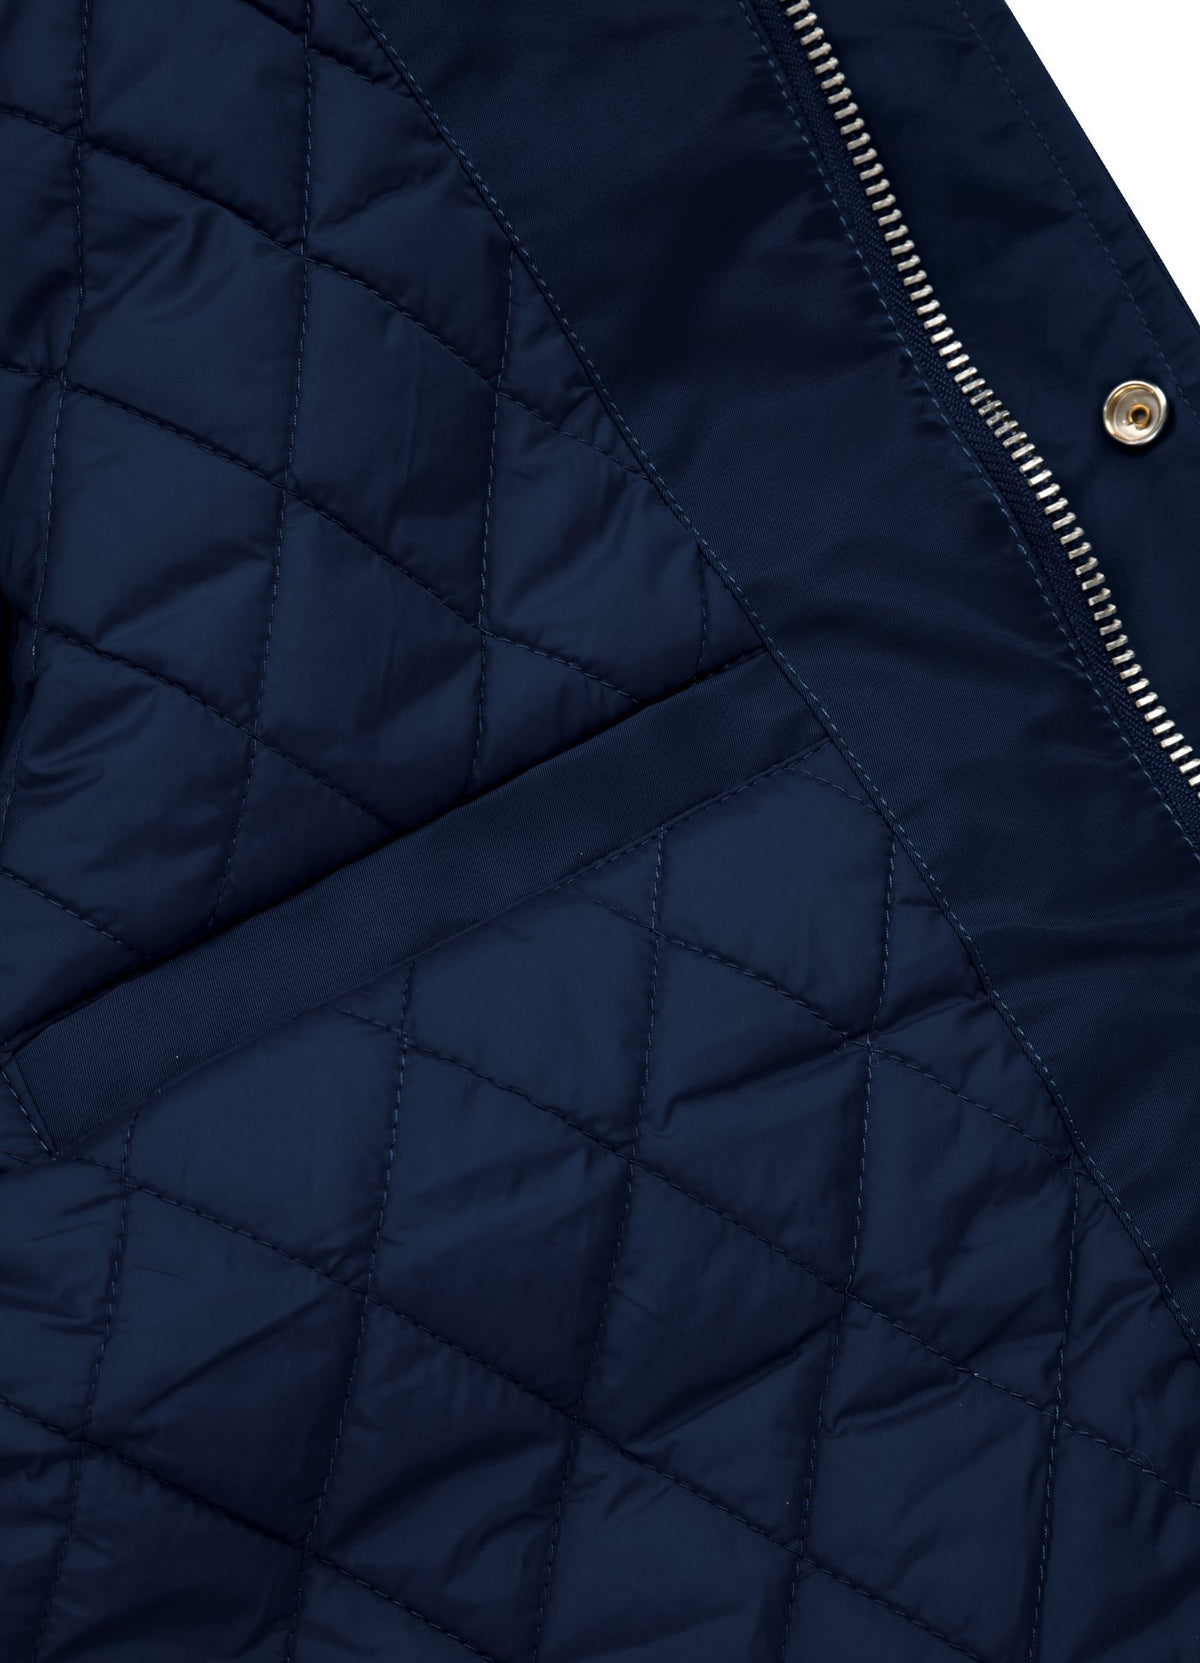 JACKET HERSON DARK NAVY - Pitbull West Coast U.S.A.